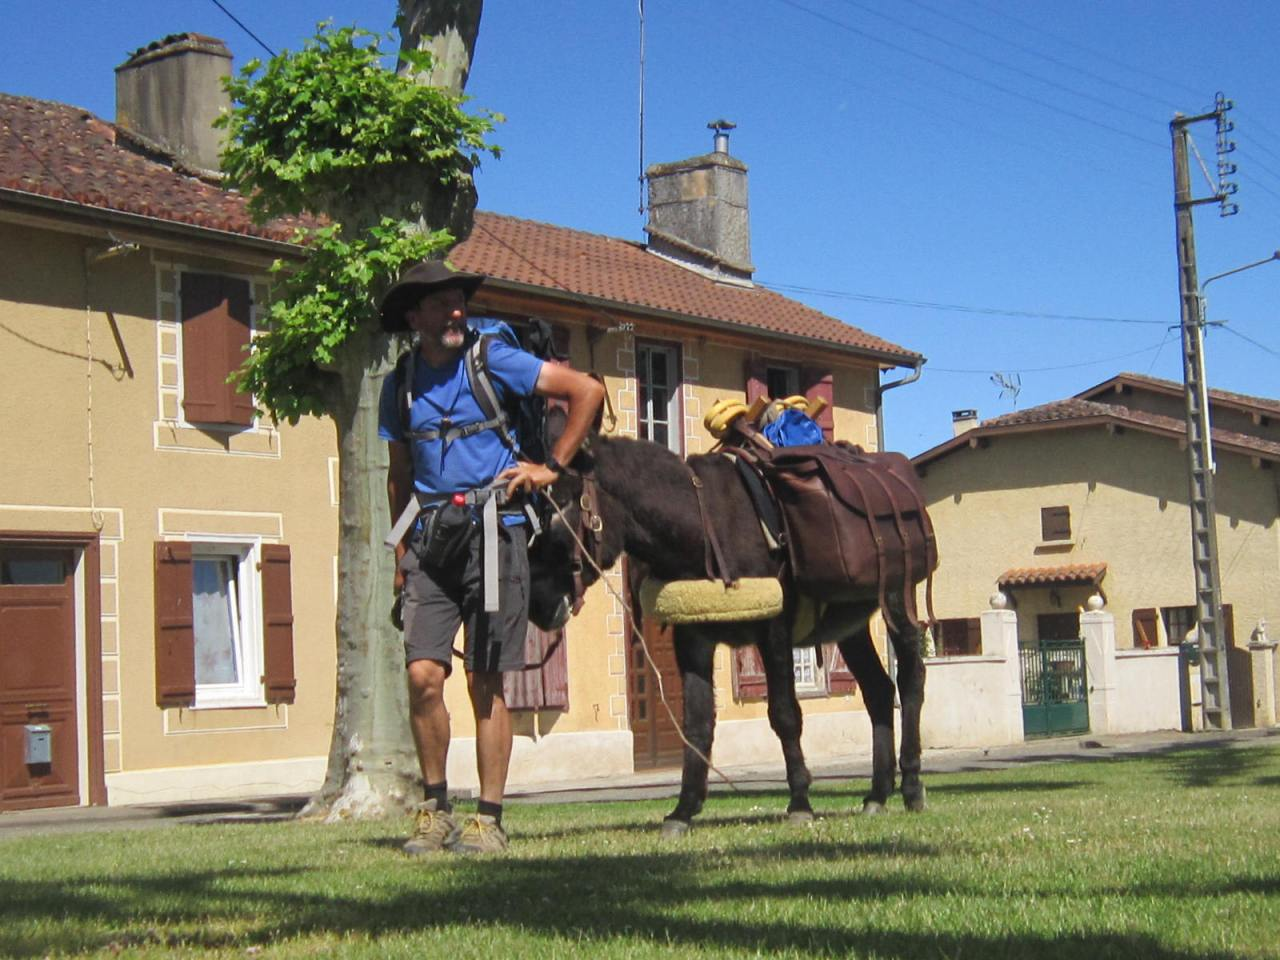 Pilgrim and donkey on Le Puy Way